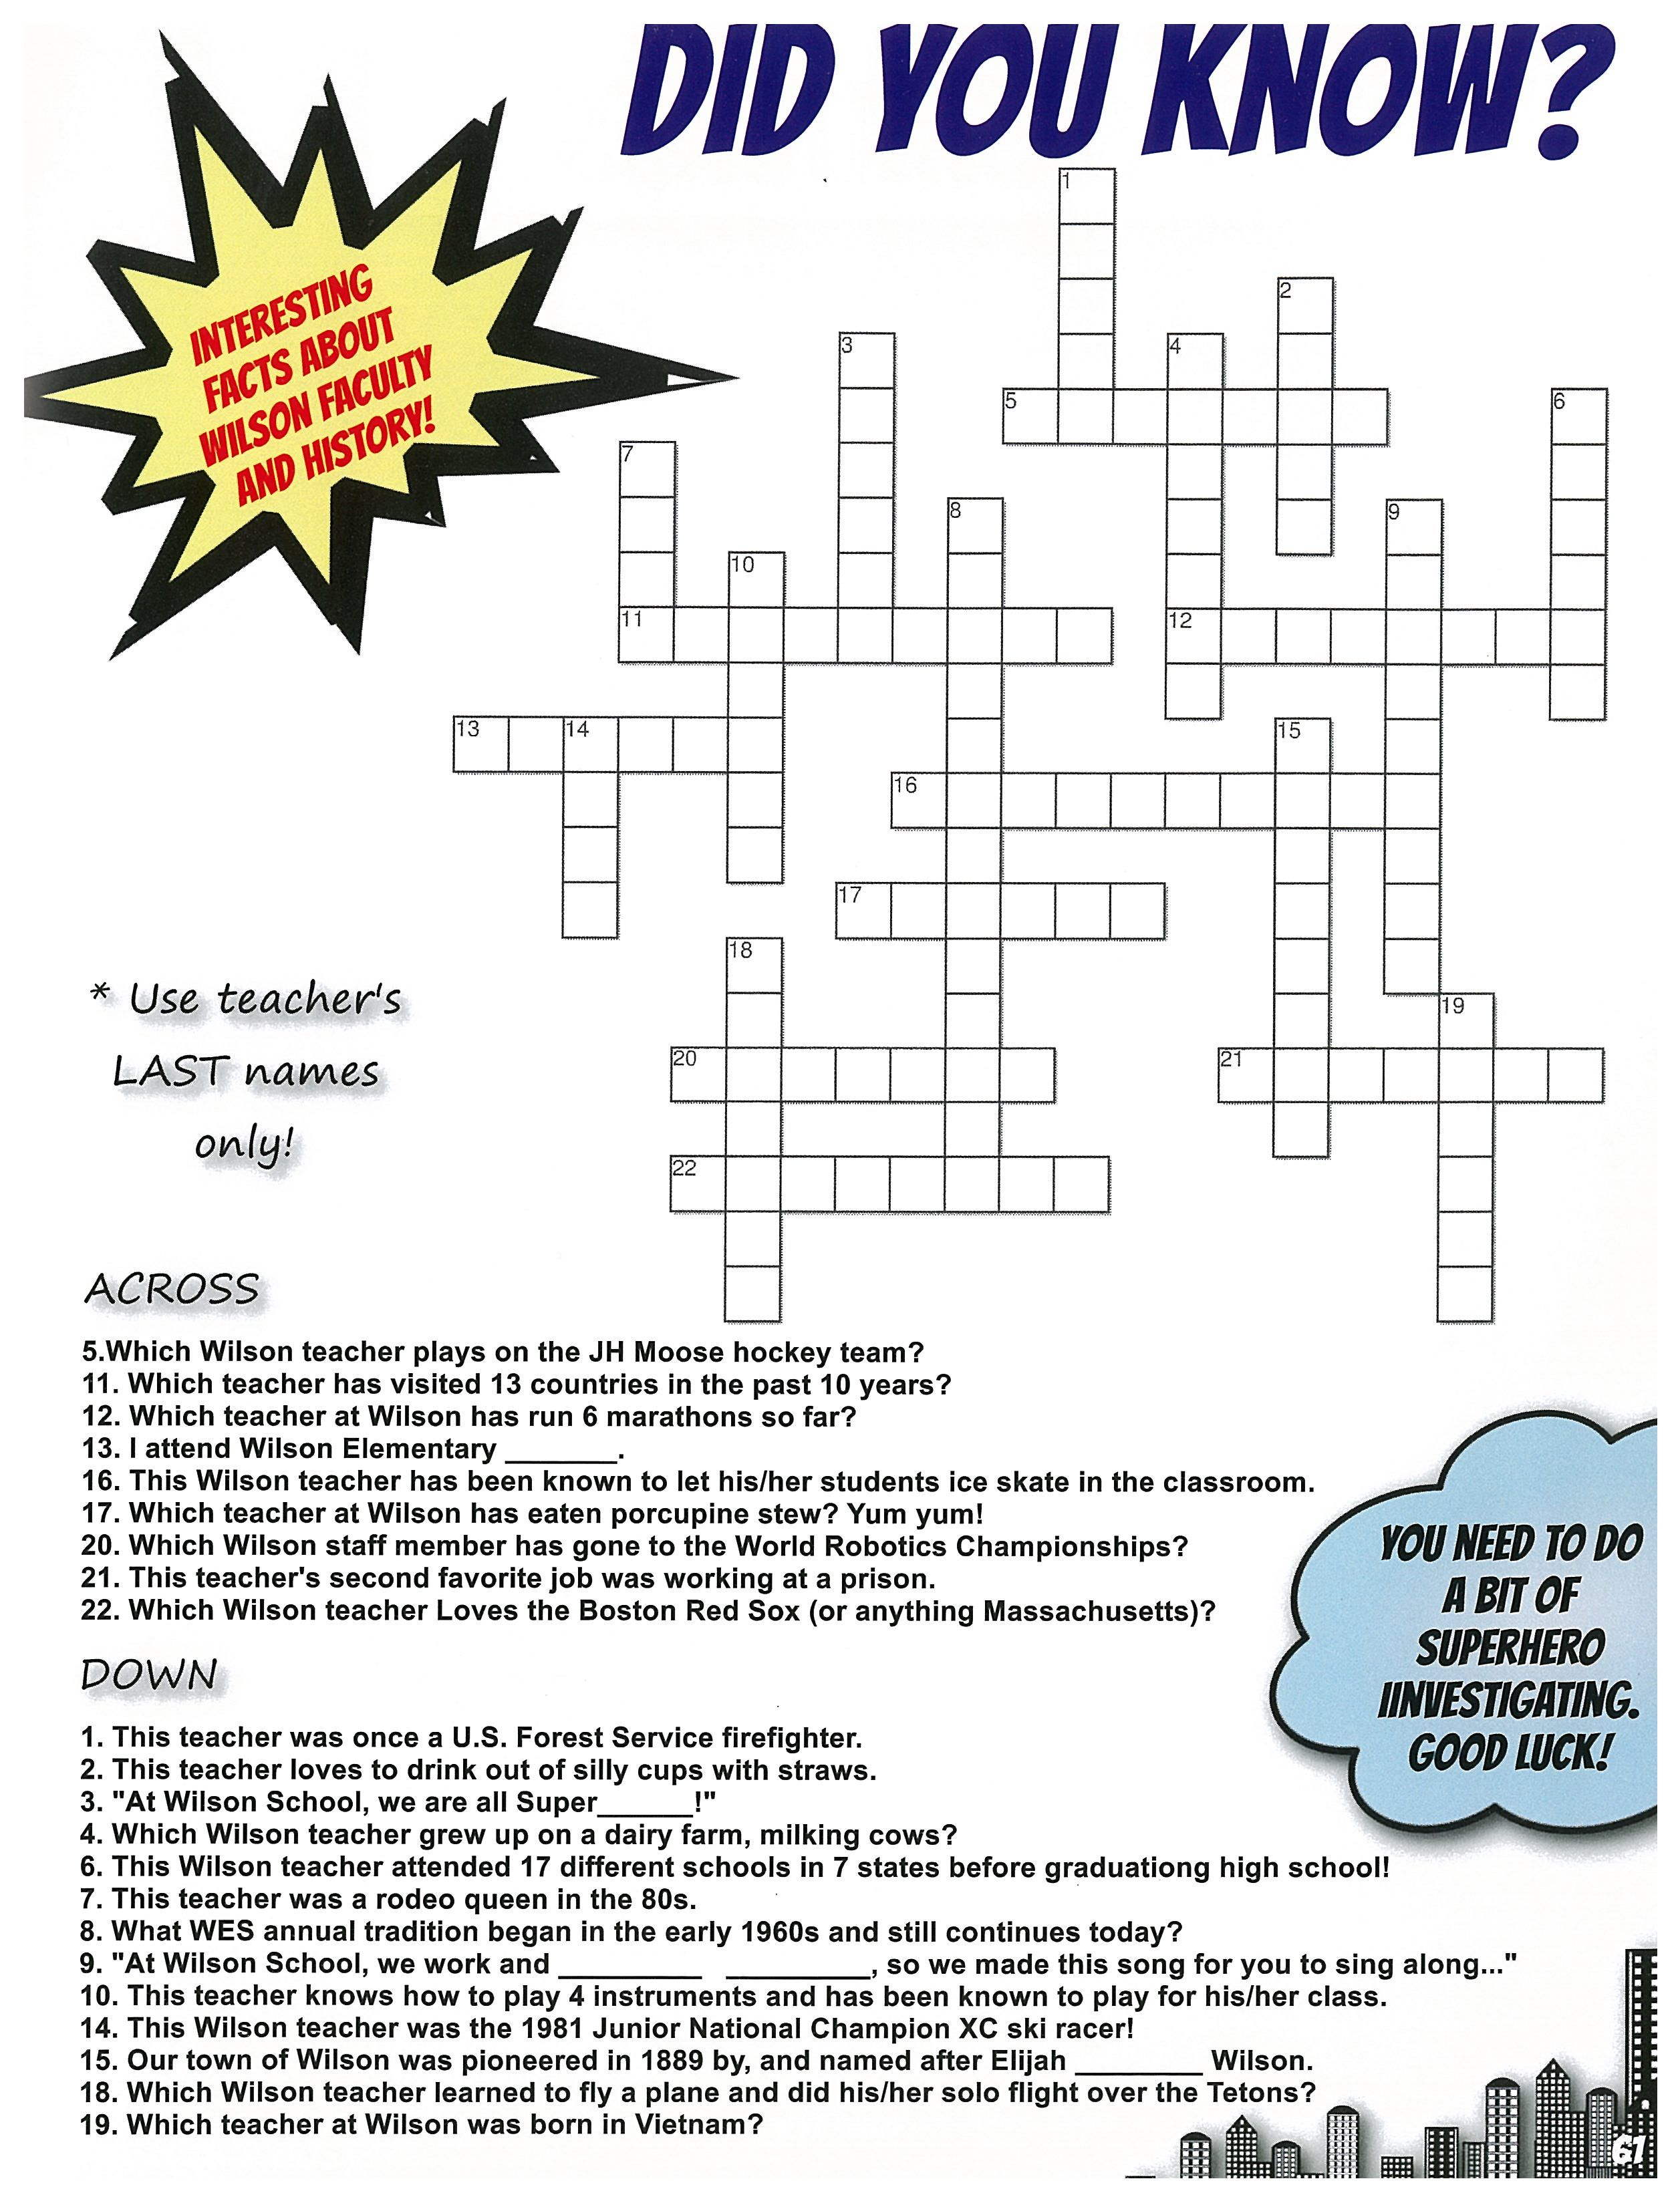 math worksheet : a fun crossword puzzle is a great idea for your yearbook! we made  : Addition Column Crossword